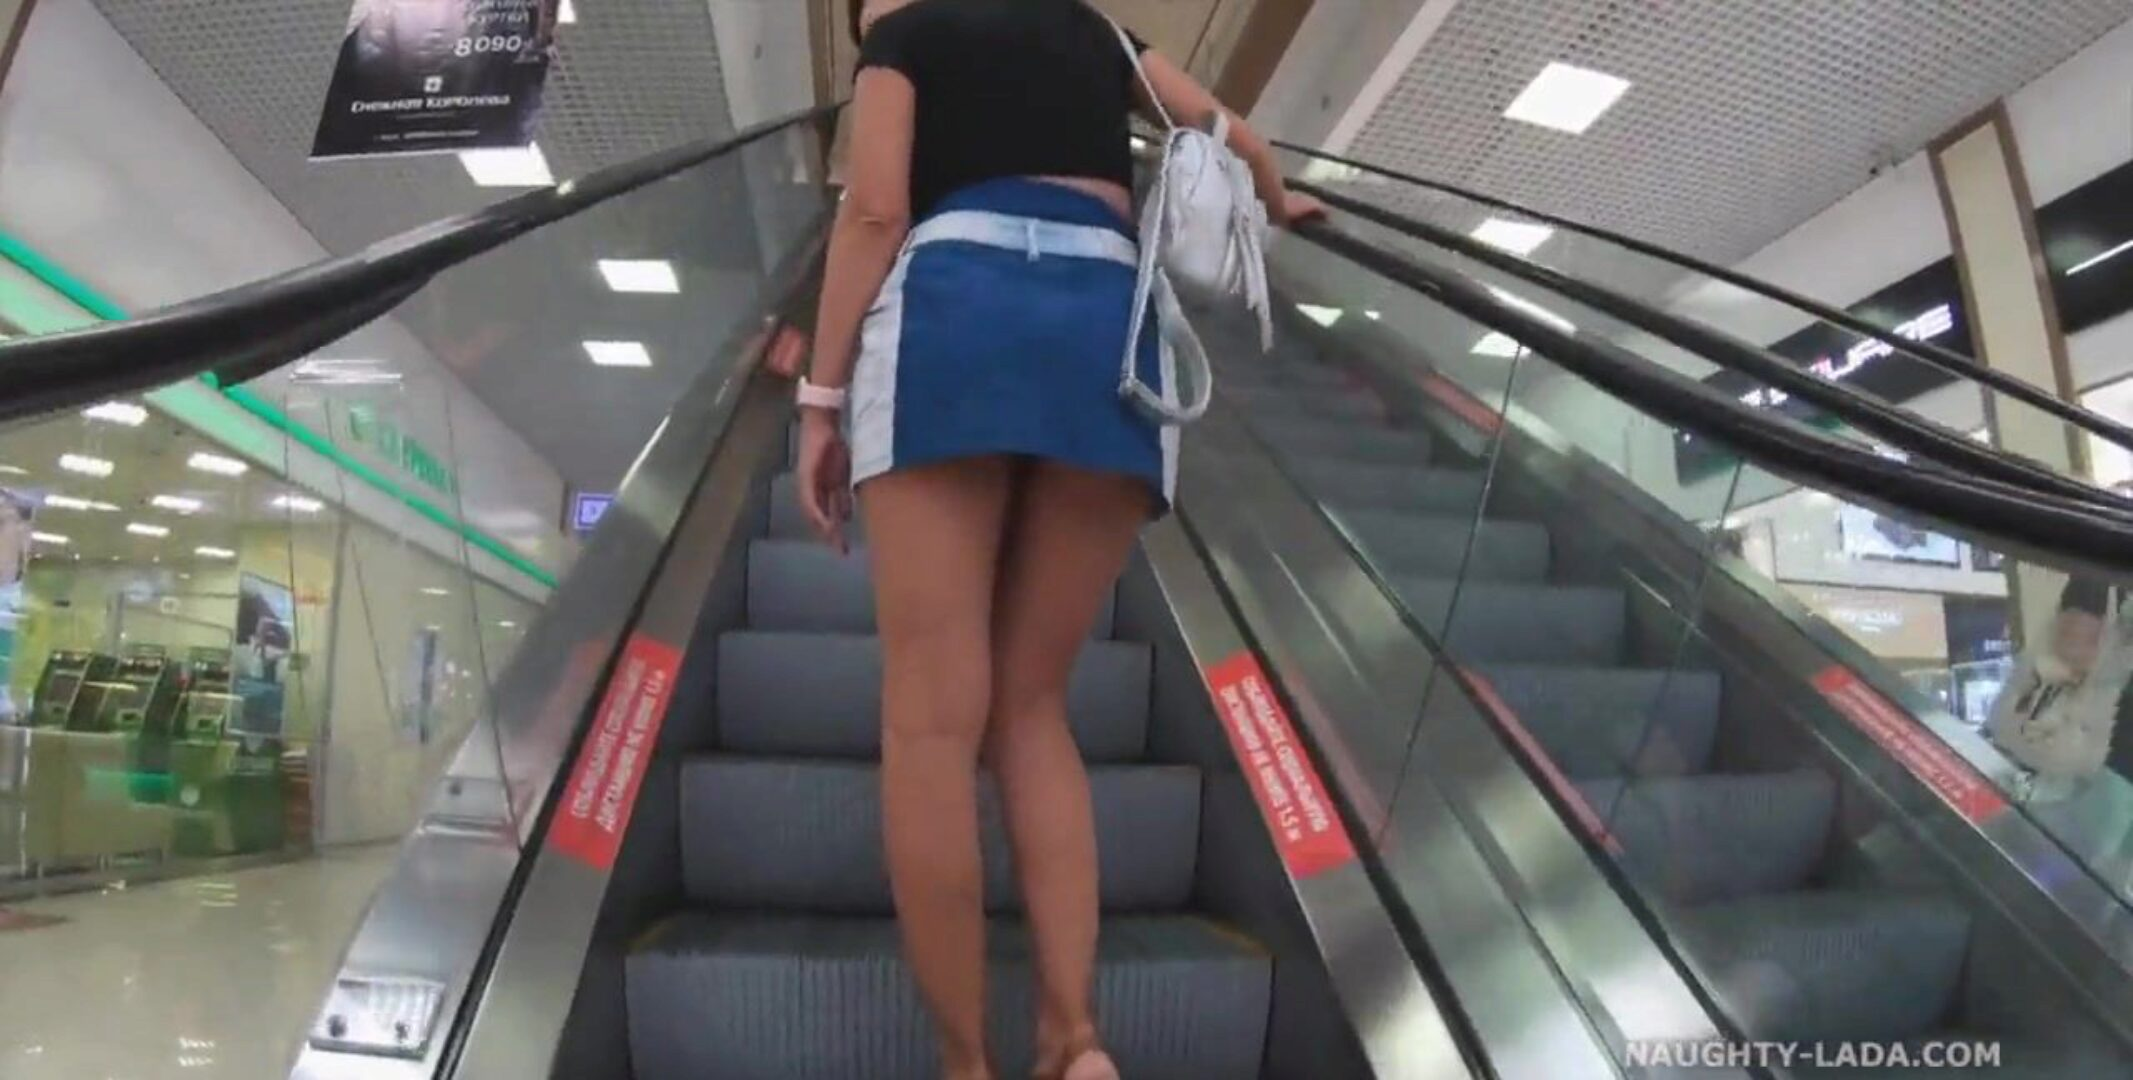 Shopping without panties I love most of all to shop without underclothing